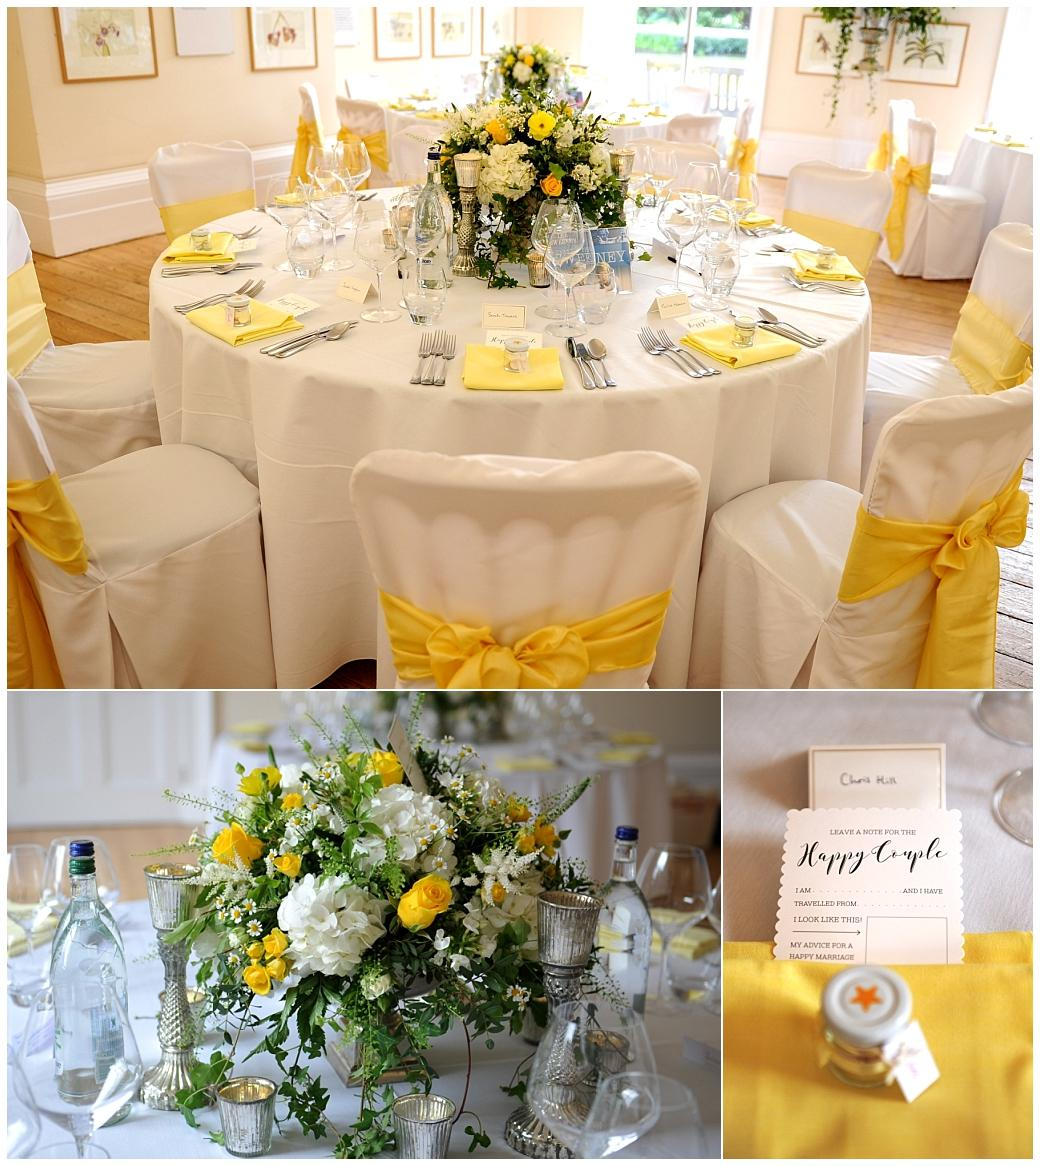 The Gallery dressed in yellow for the wedding breakfast at Surrey venue Cambridge Cottage in the world famous botanical gardens at Kew